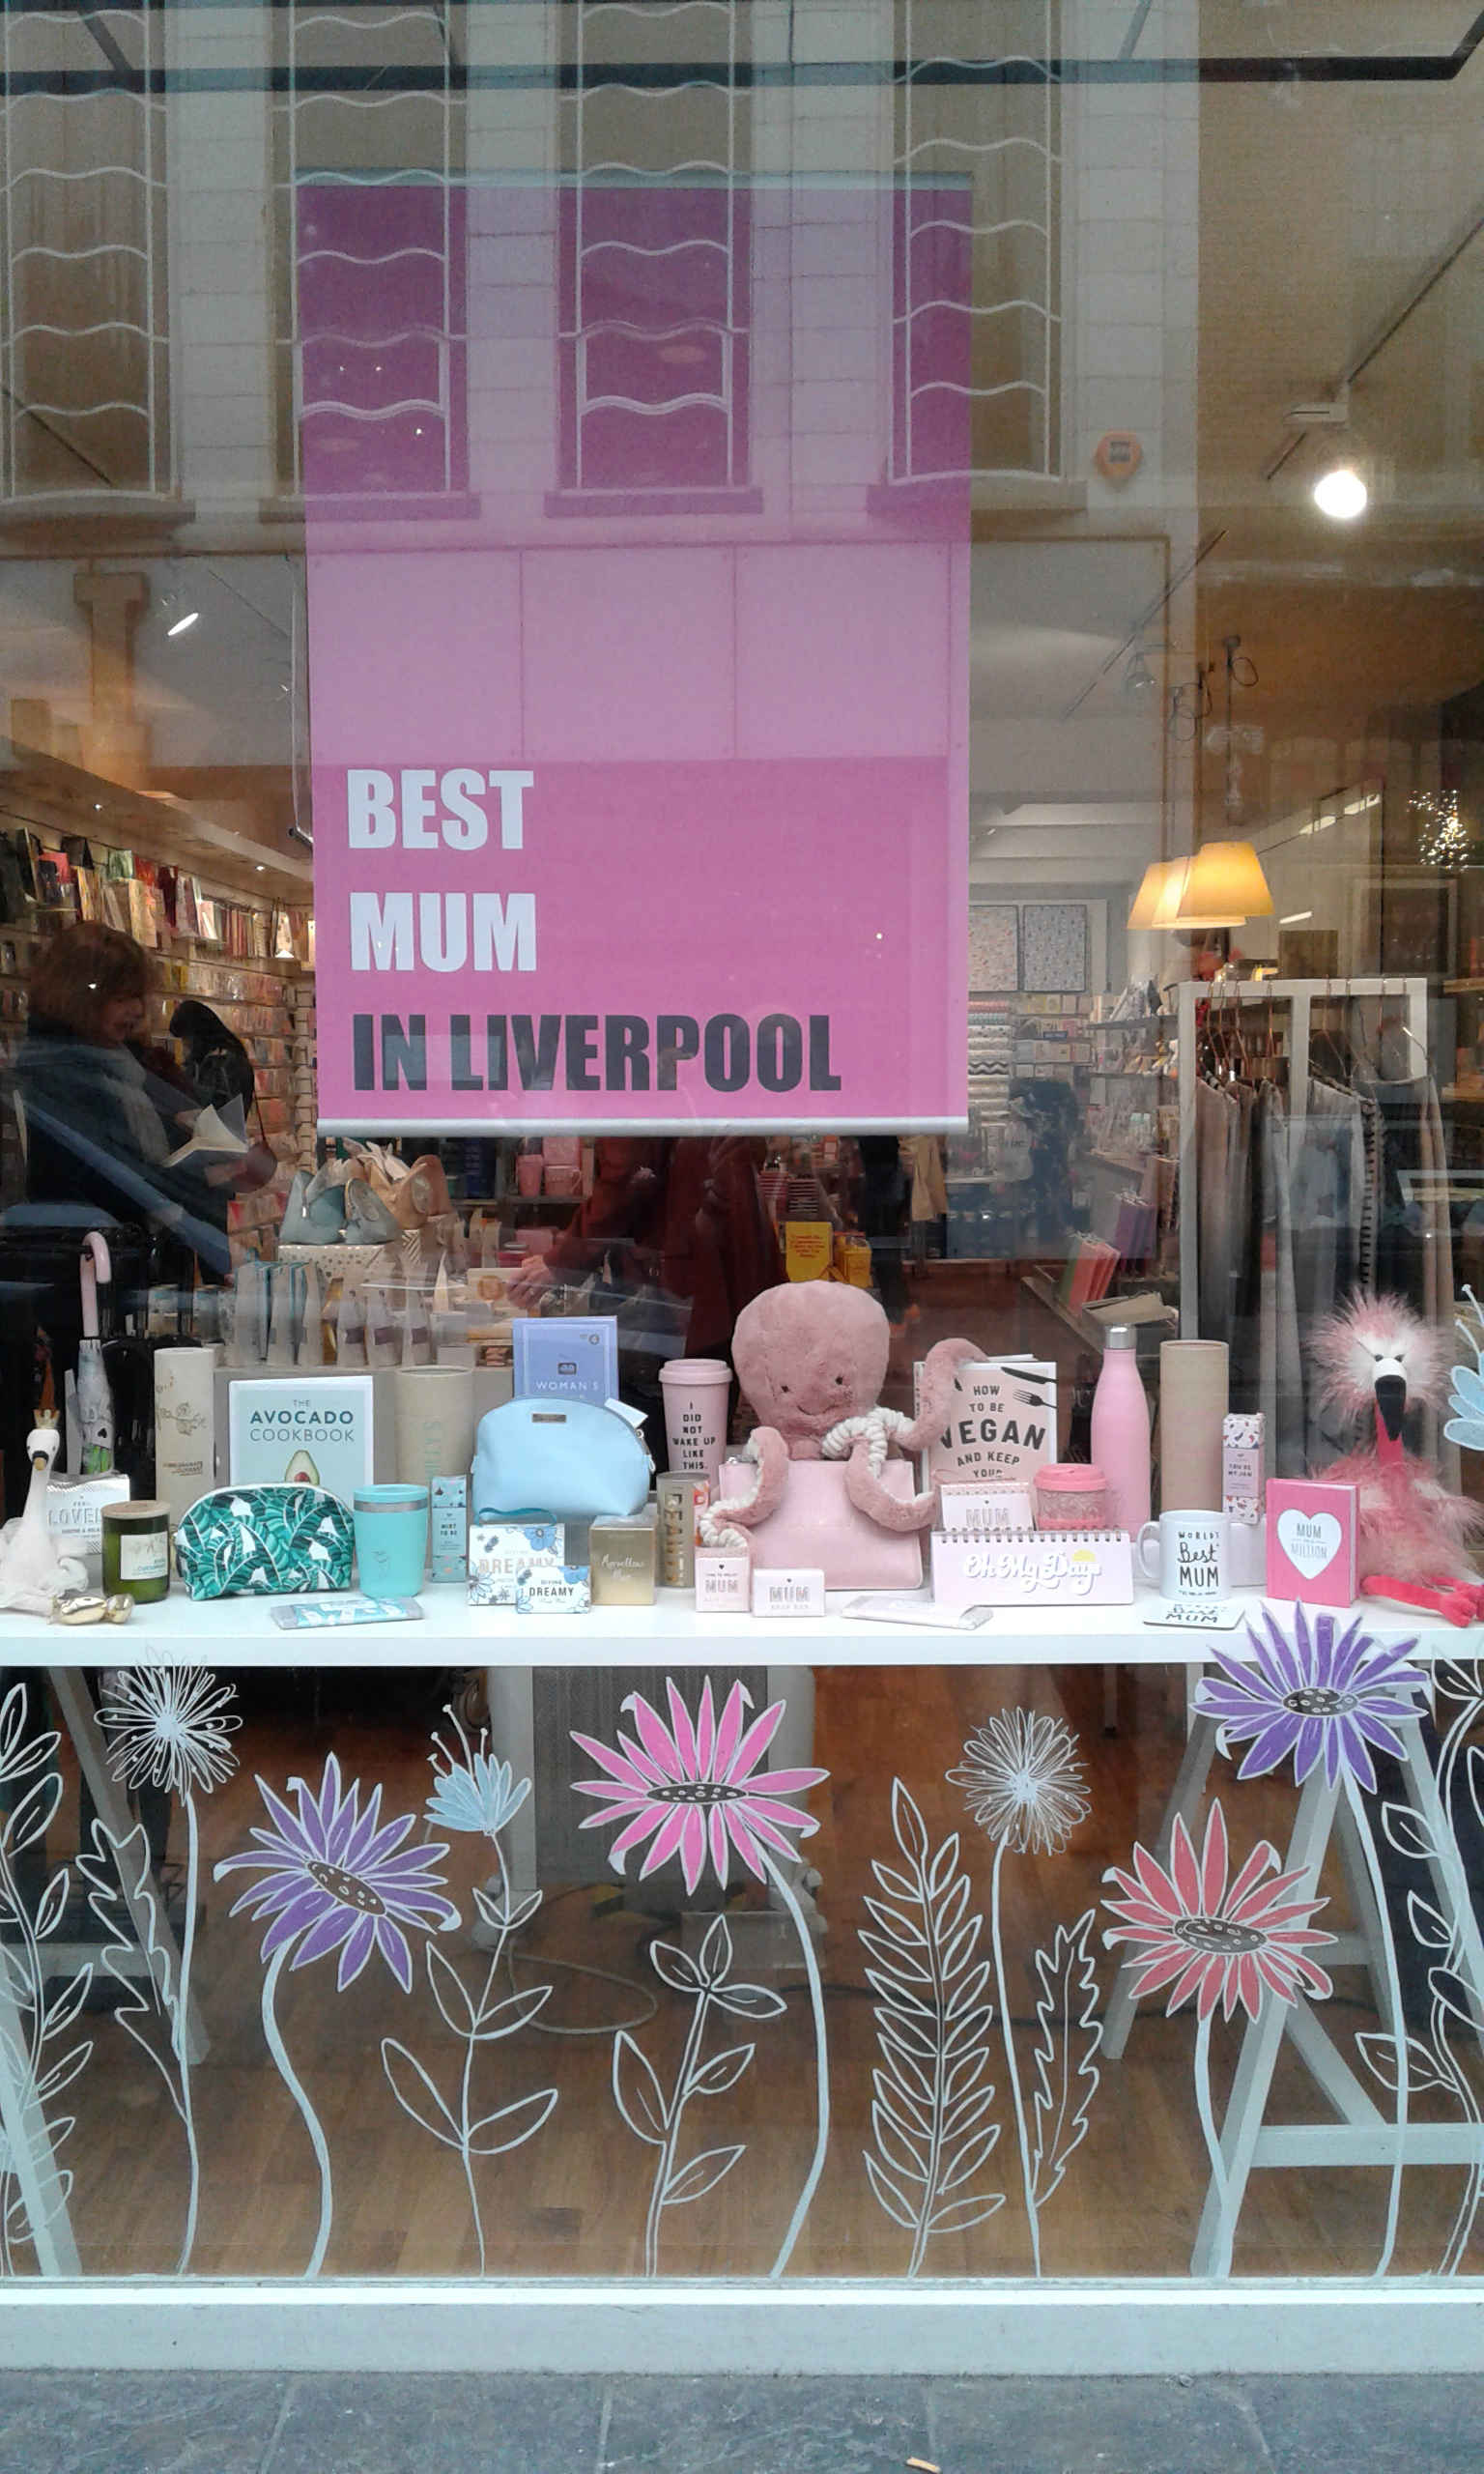 Above: The Mother's Day window display in one of Utility's Liverpool store.